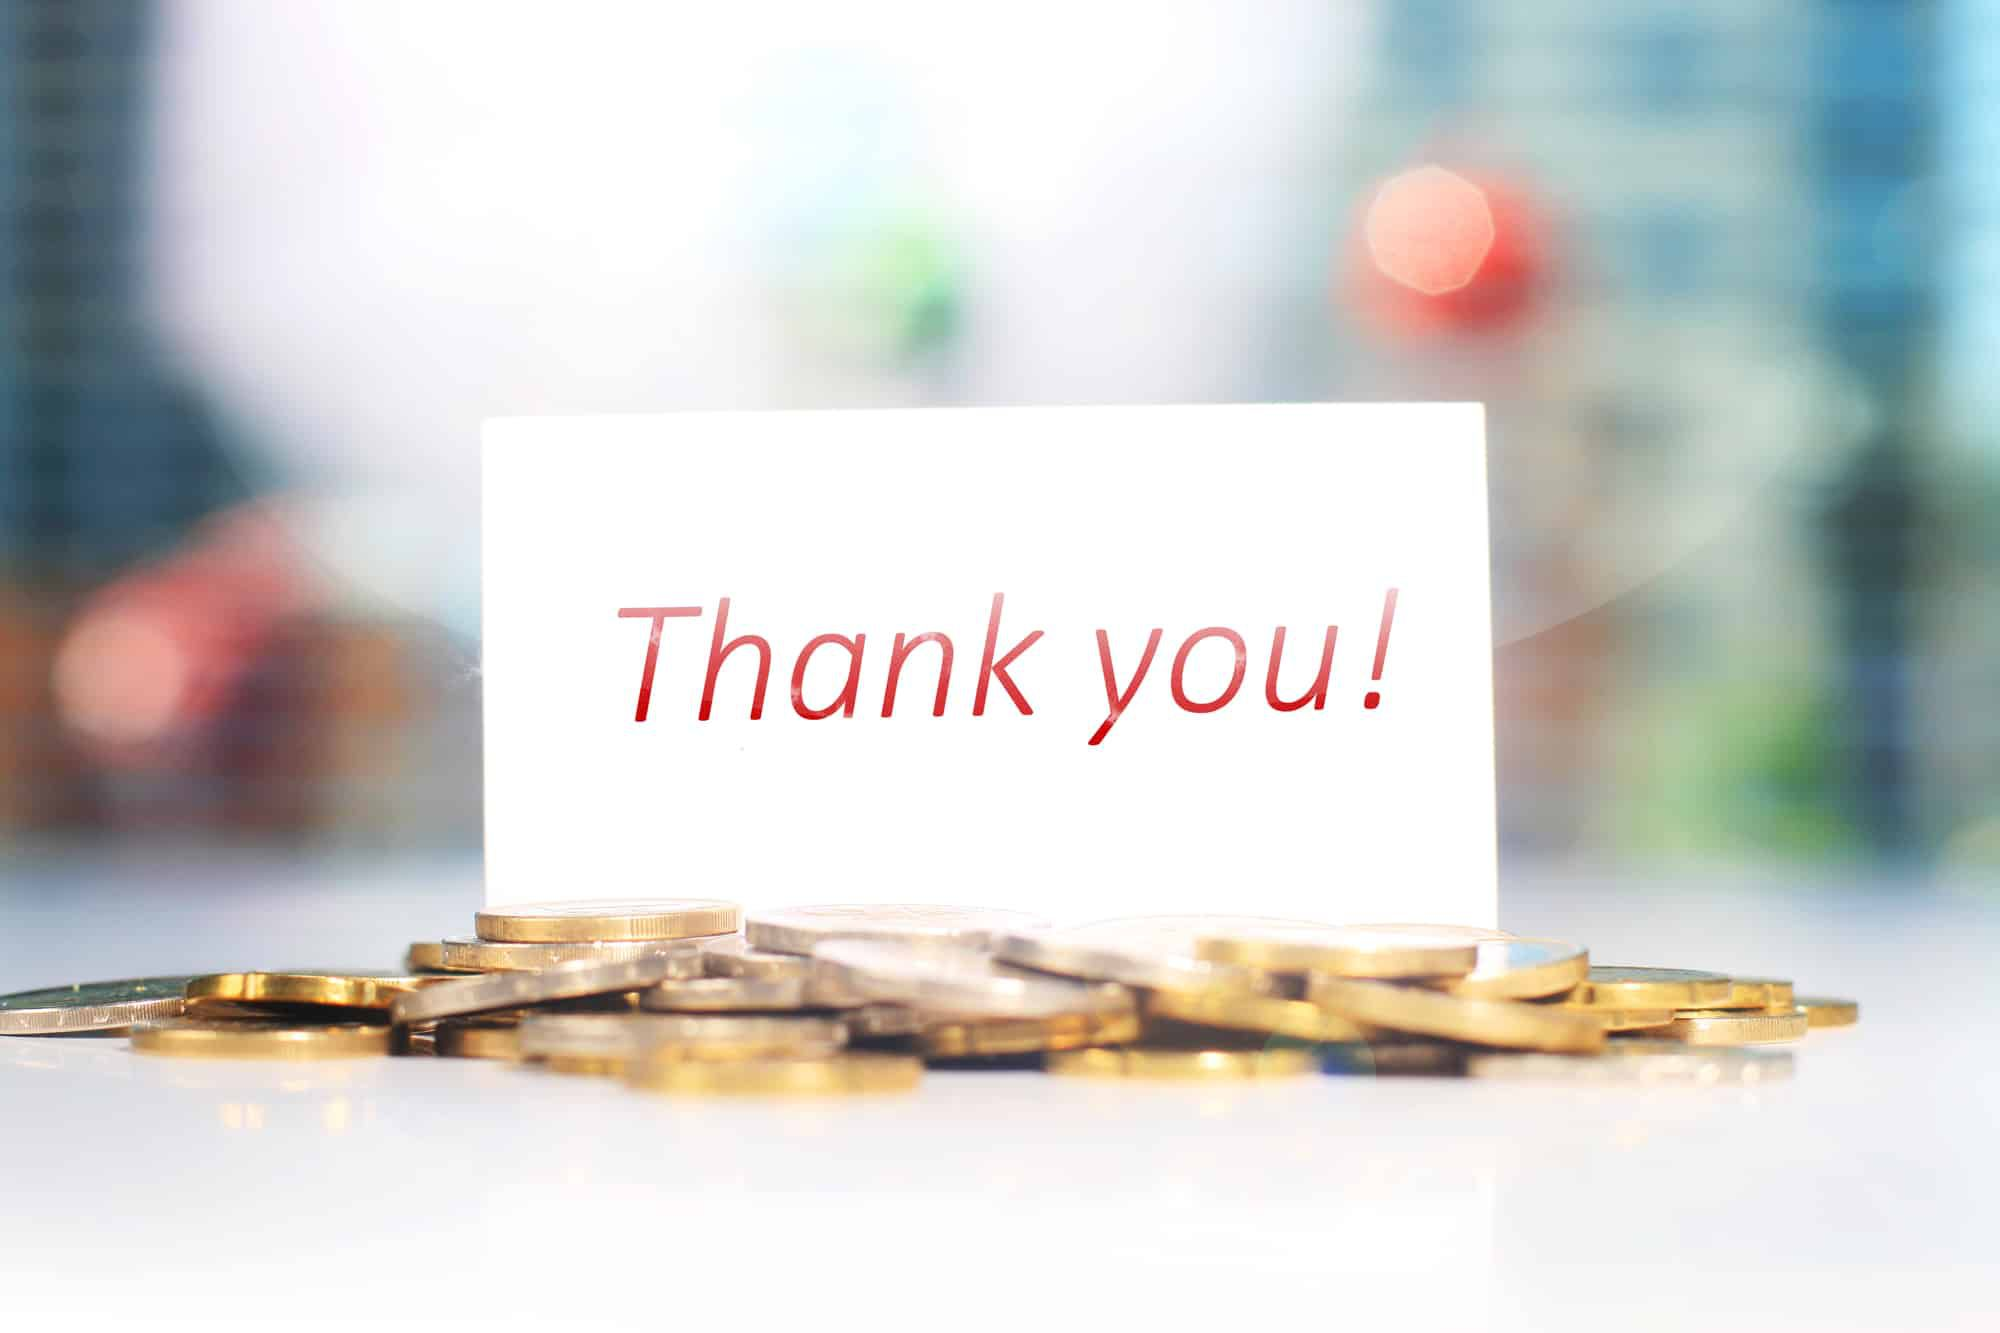 006 Amazing Thank You Note Template For Money High Def  Card Wording Wedding Example Donation GraduationFull